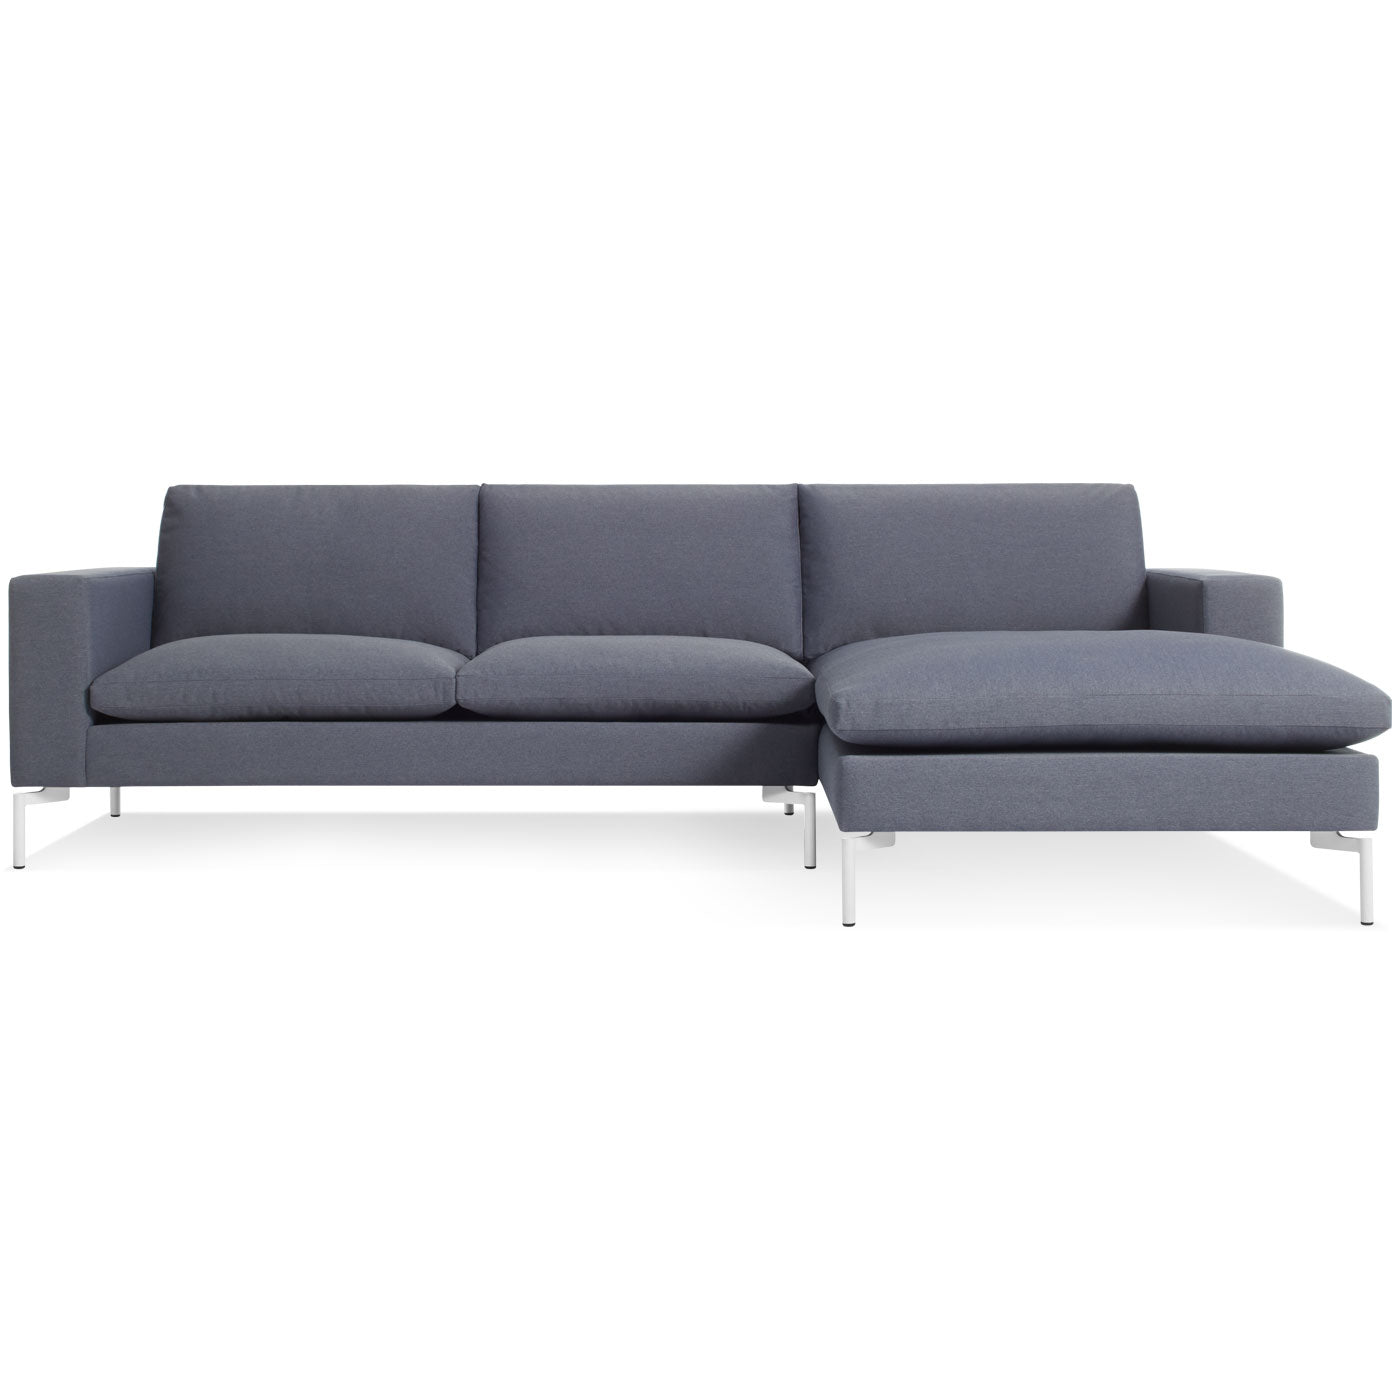 "New Standard 105"" Sofa Sectional"